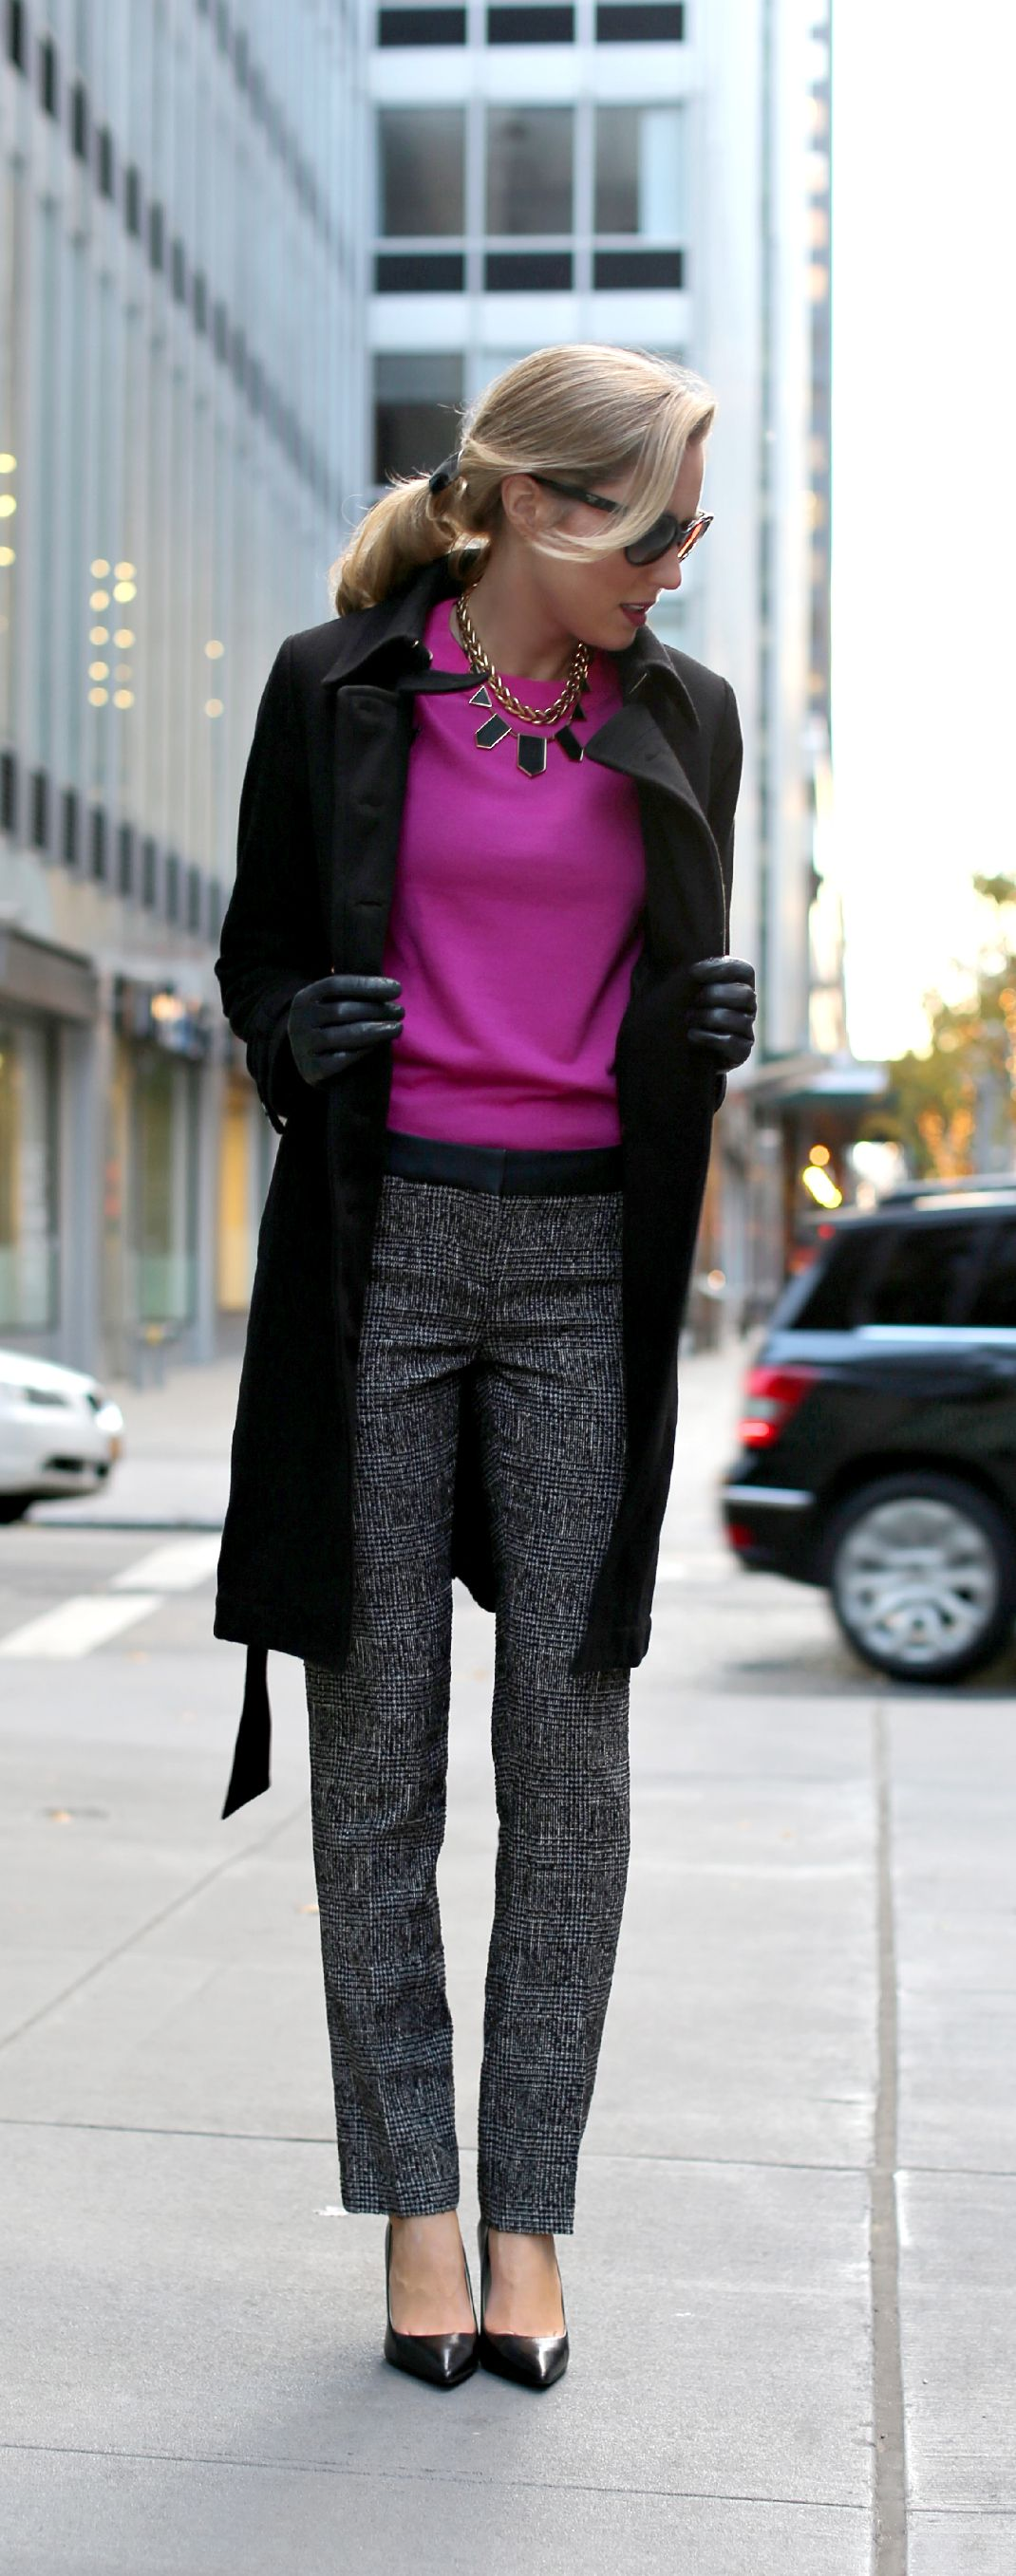 The Classy Cubicle: Fuchsia {express, j. crew, ralph lauren, coach, prada, marc jacobs, work wear, office style, tweed pants with leather details, house of harlow}